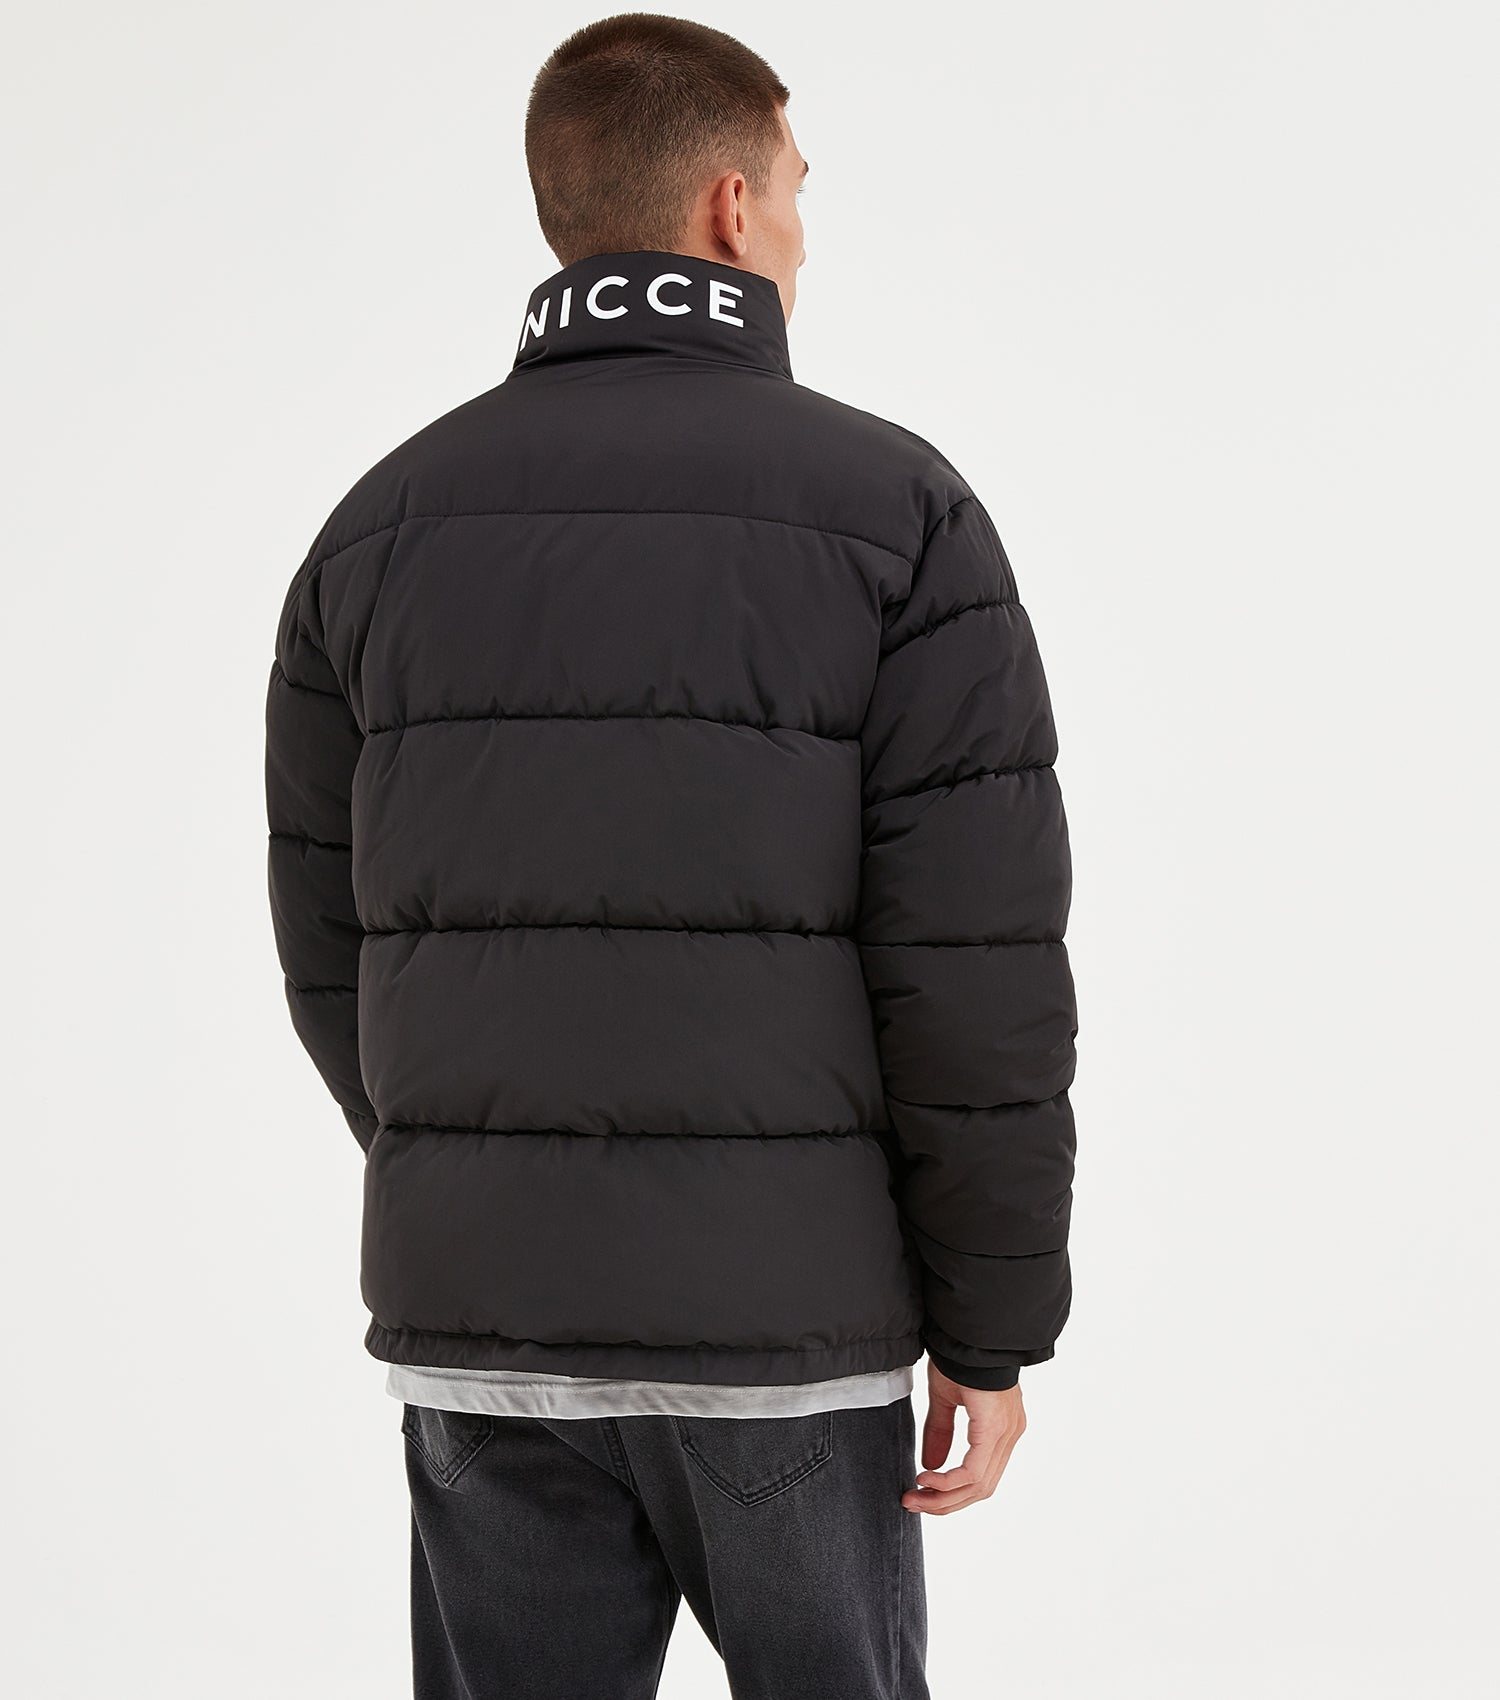 NICCE Mens Deca Jacket | Black, Outerwear